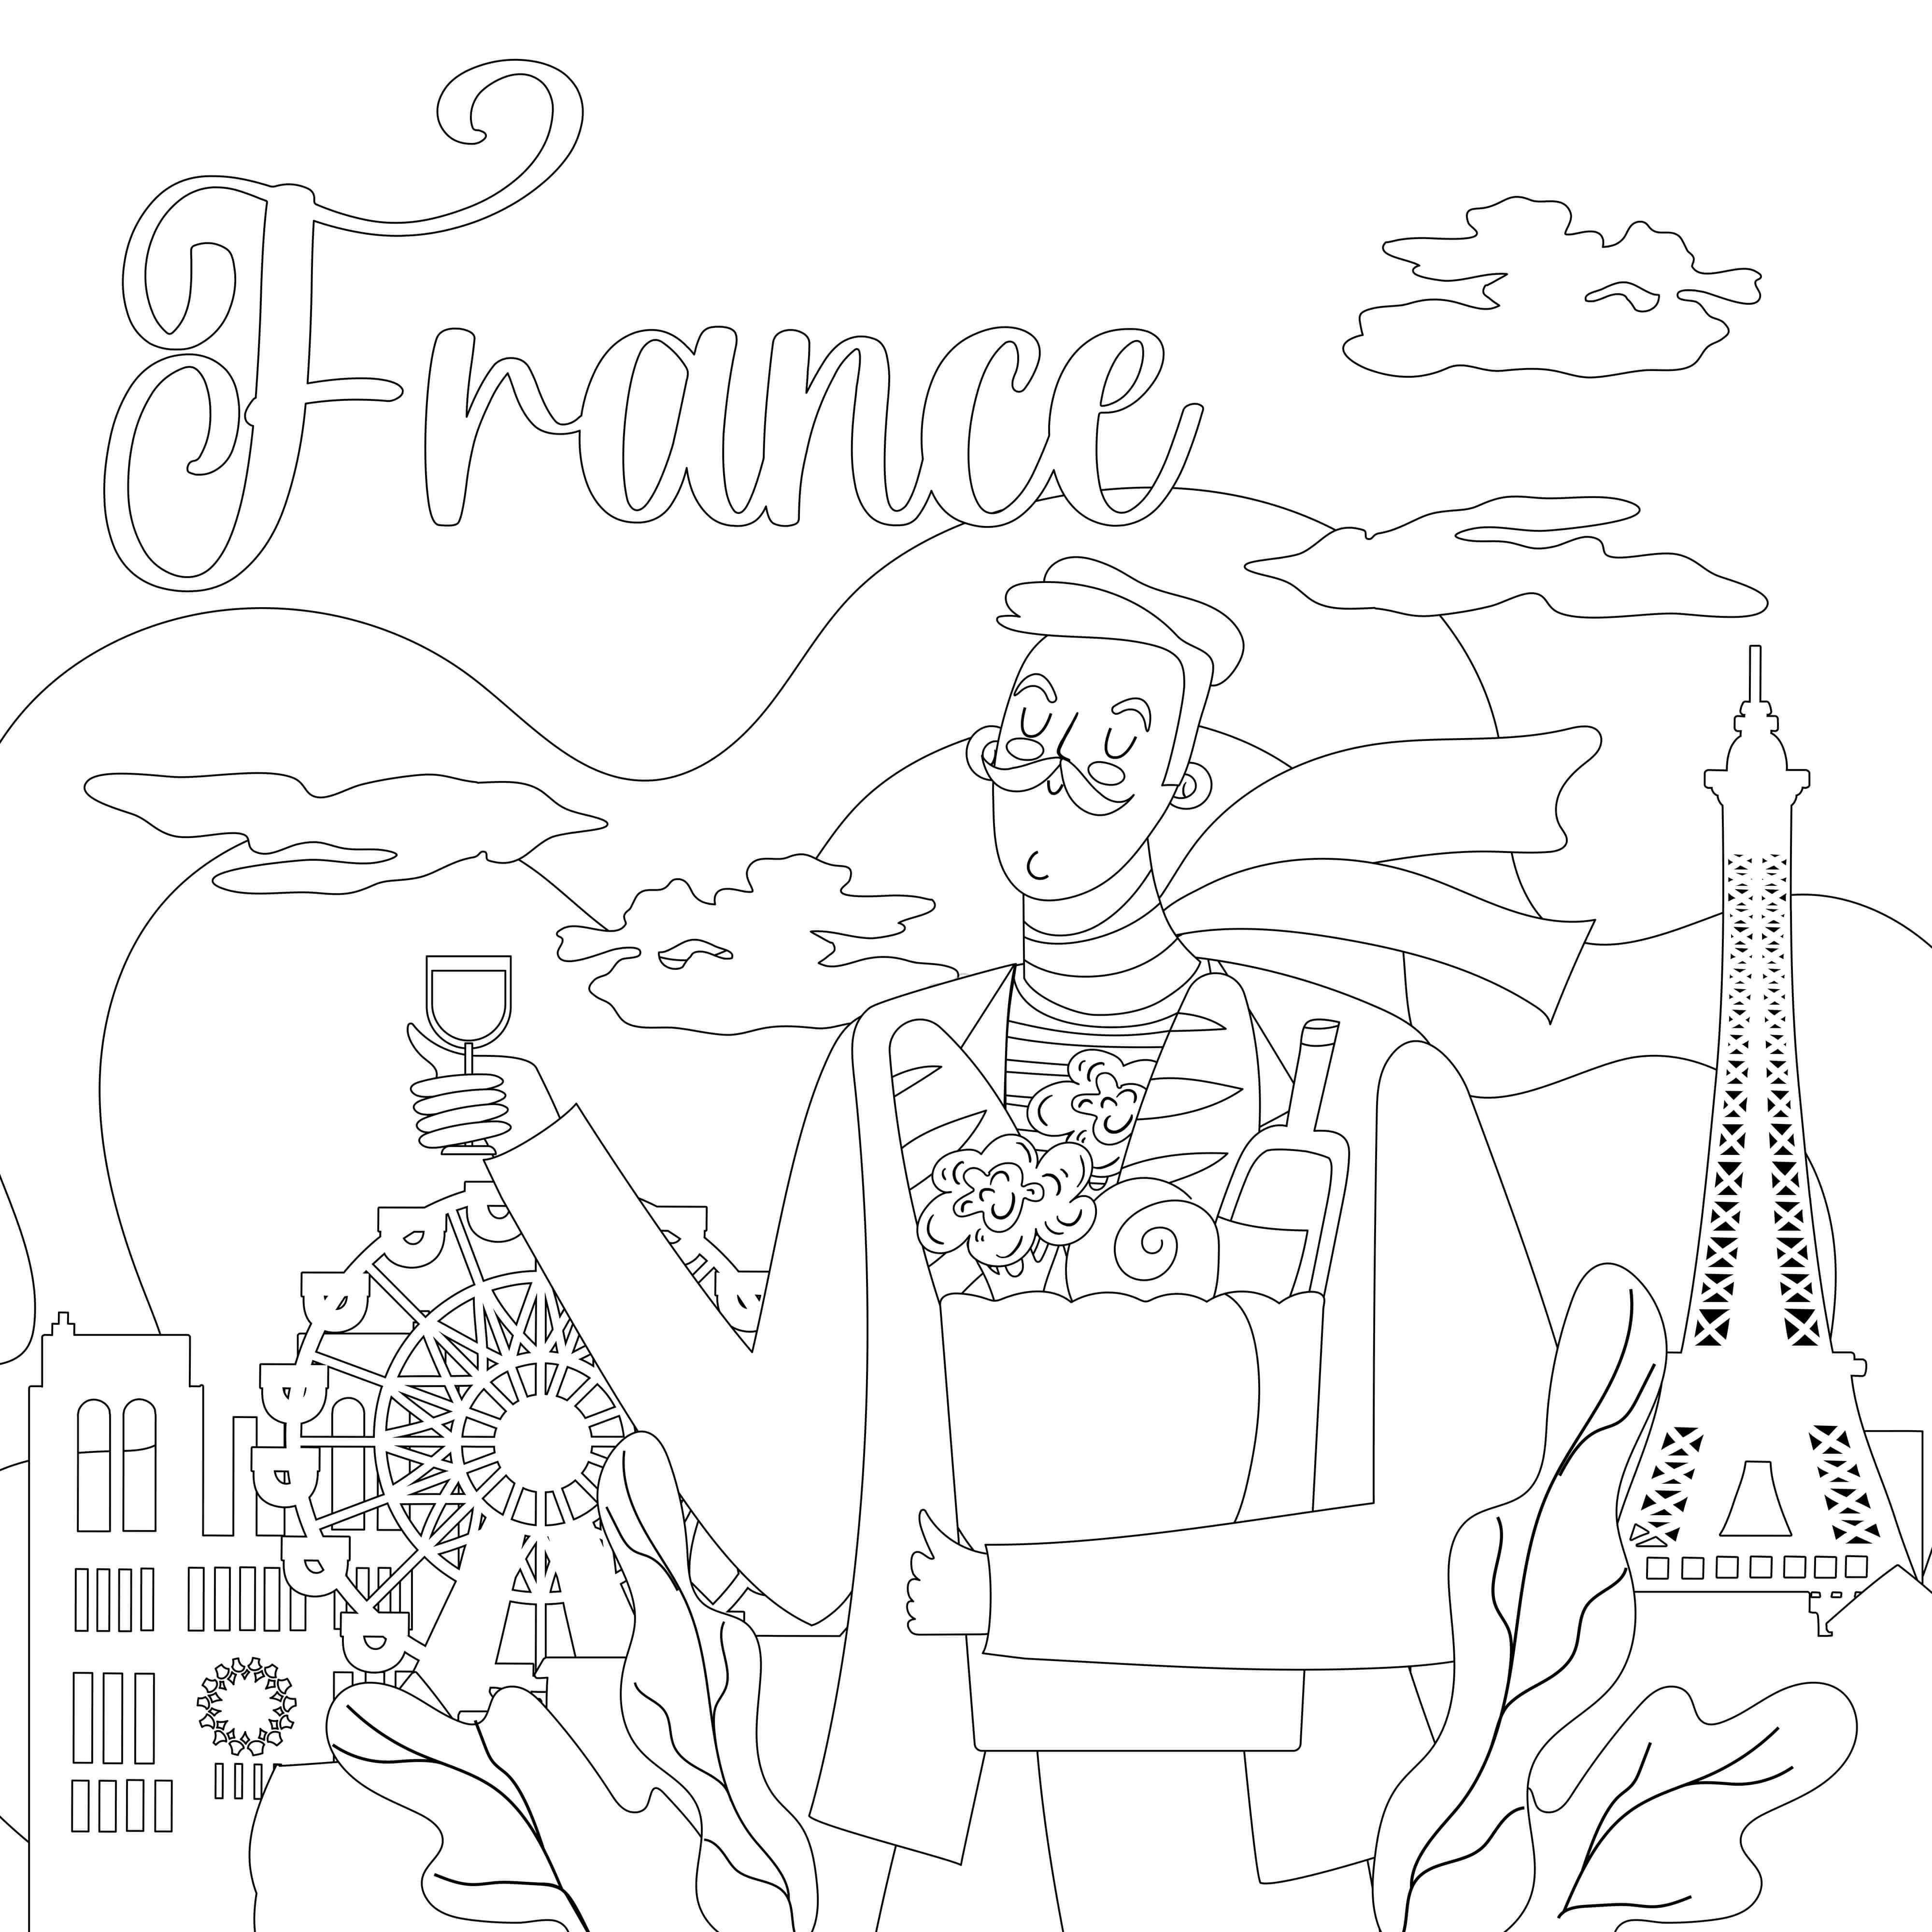 French Tour free coloring pages to print